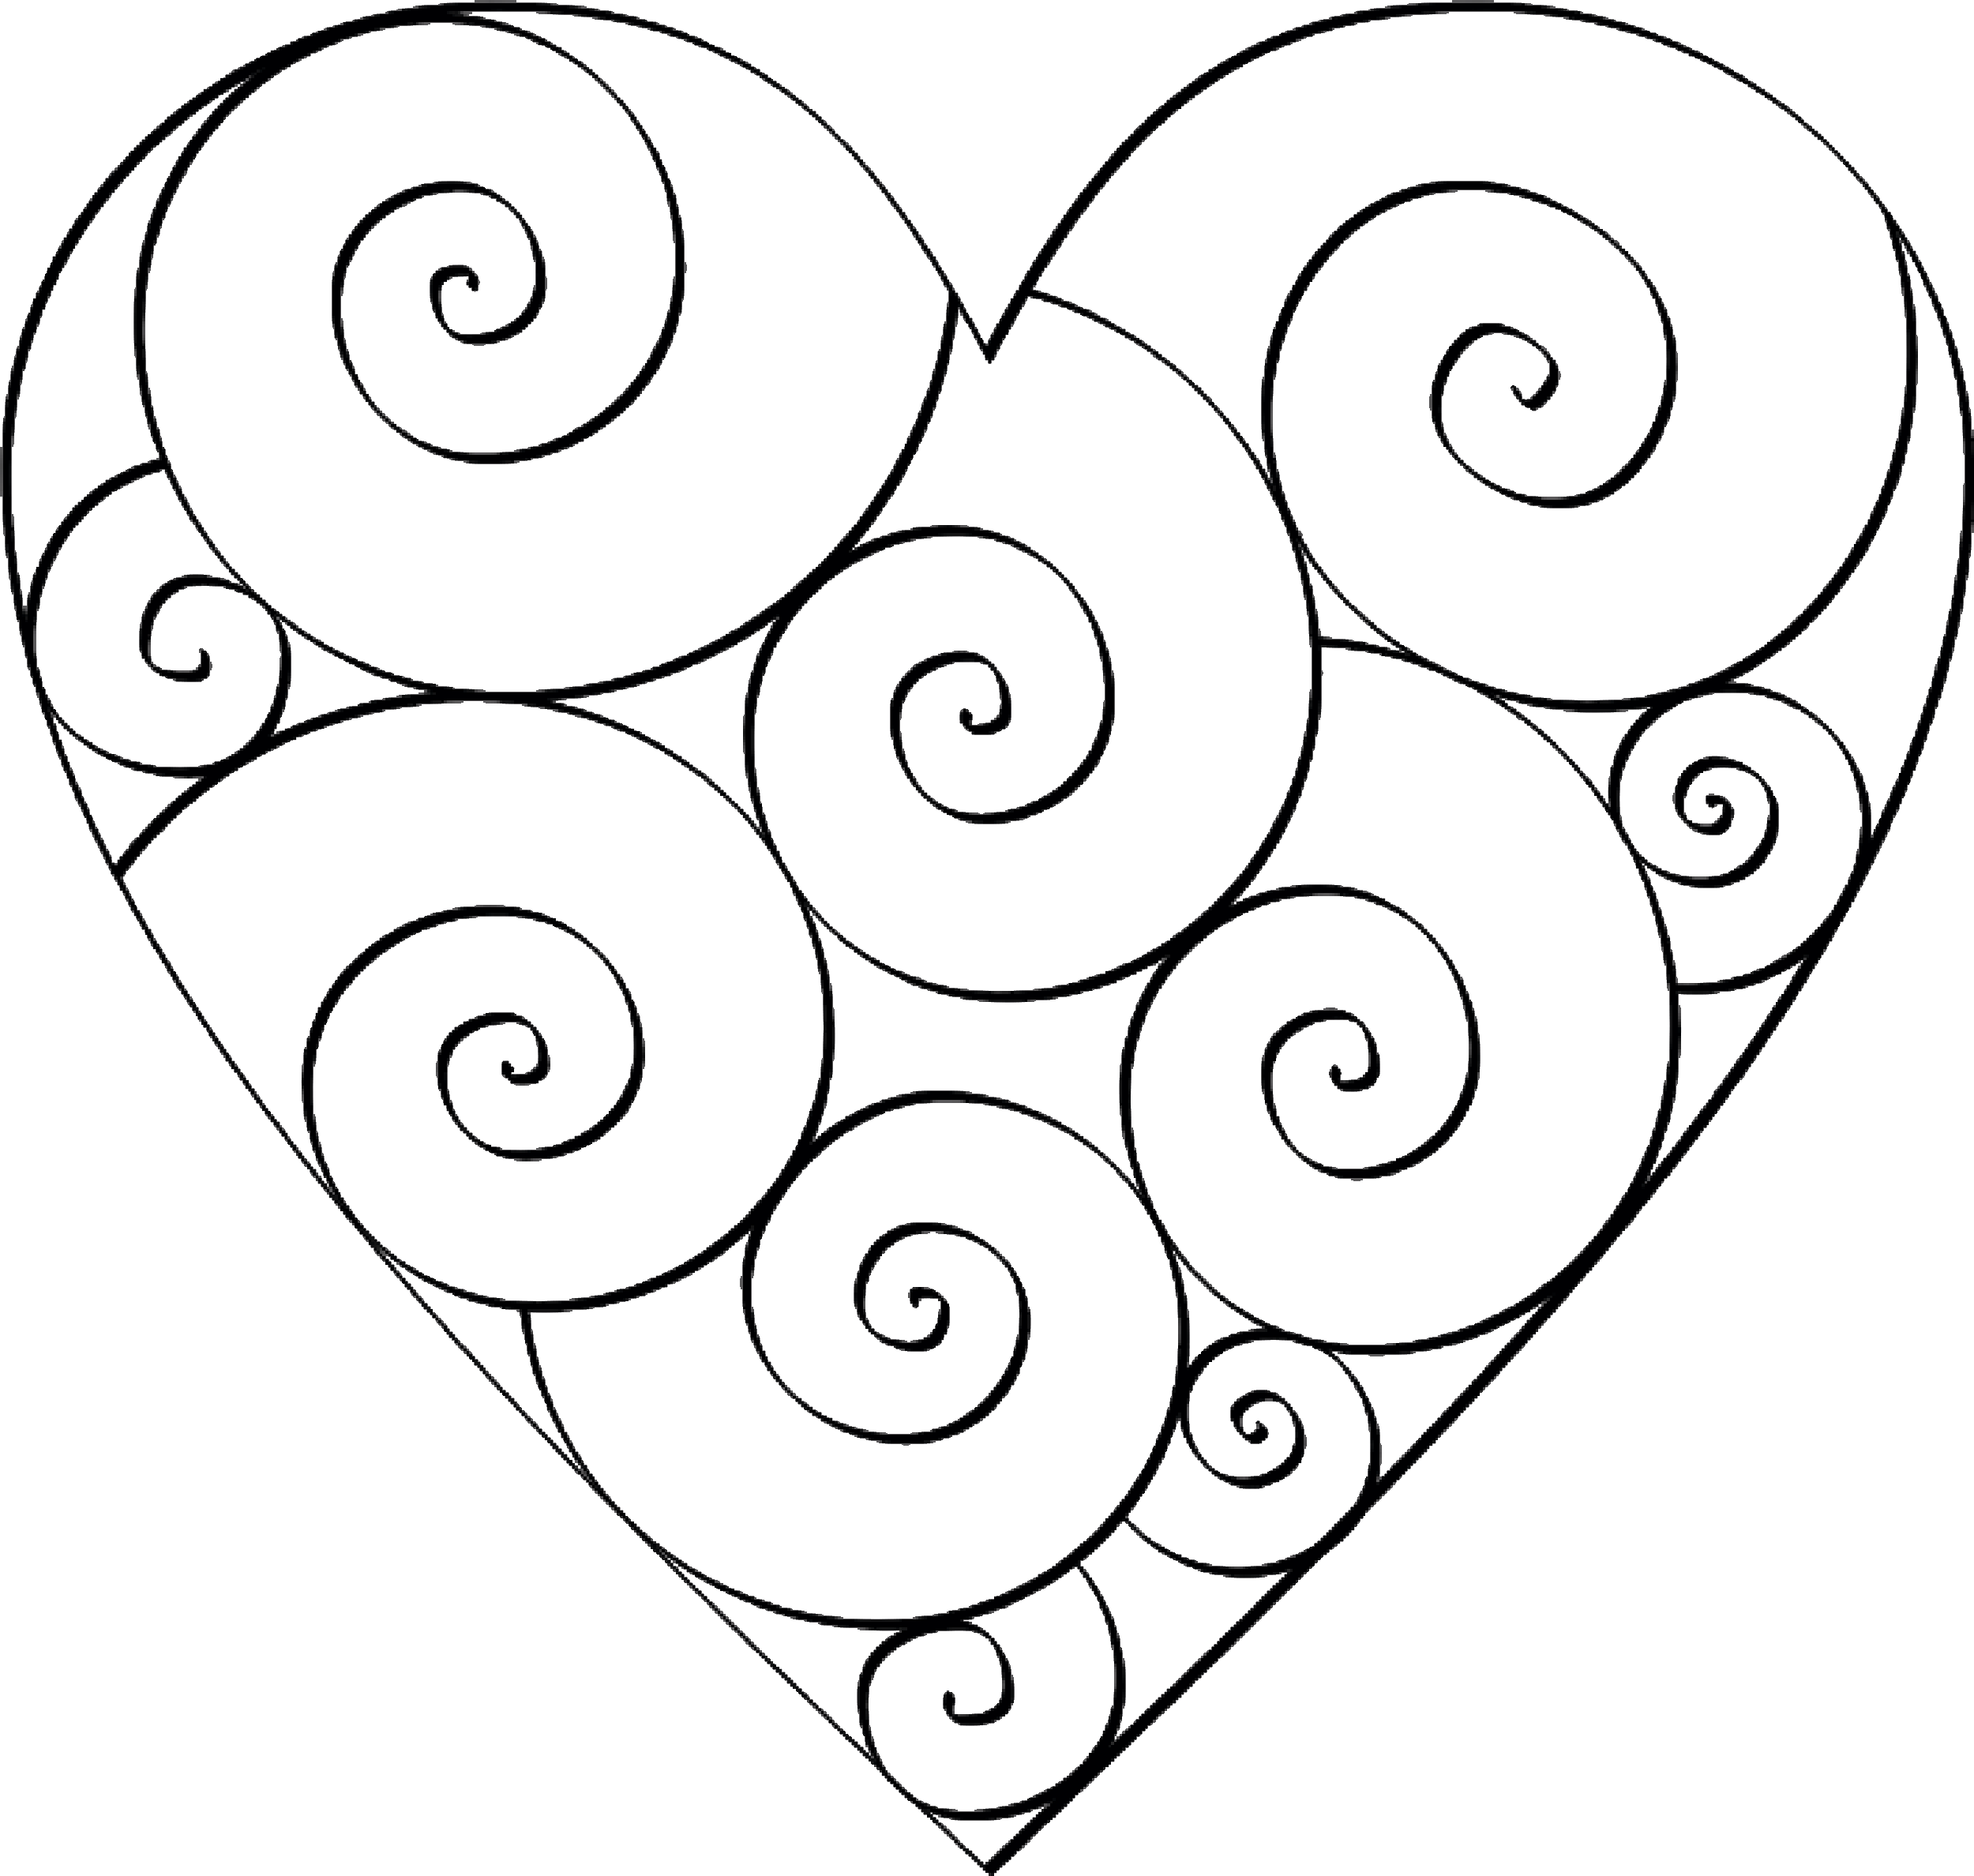 heart for coloring free printable heart coloring pages for kids for coloring heart